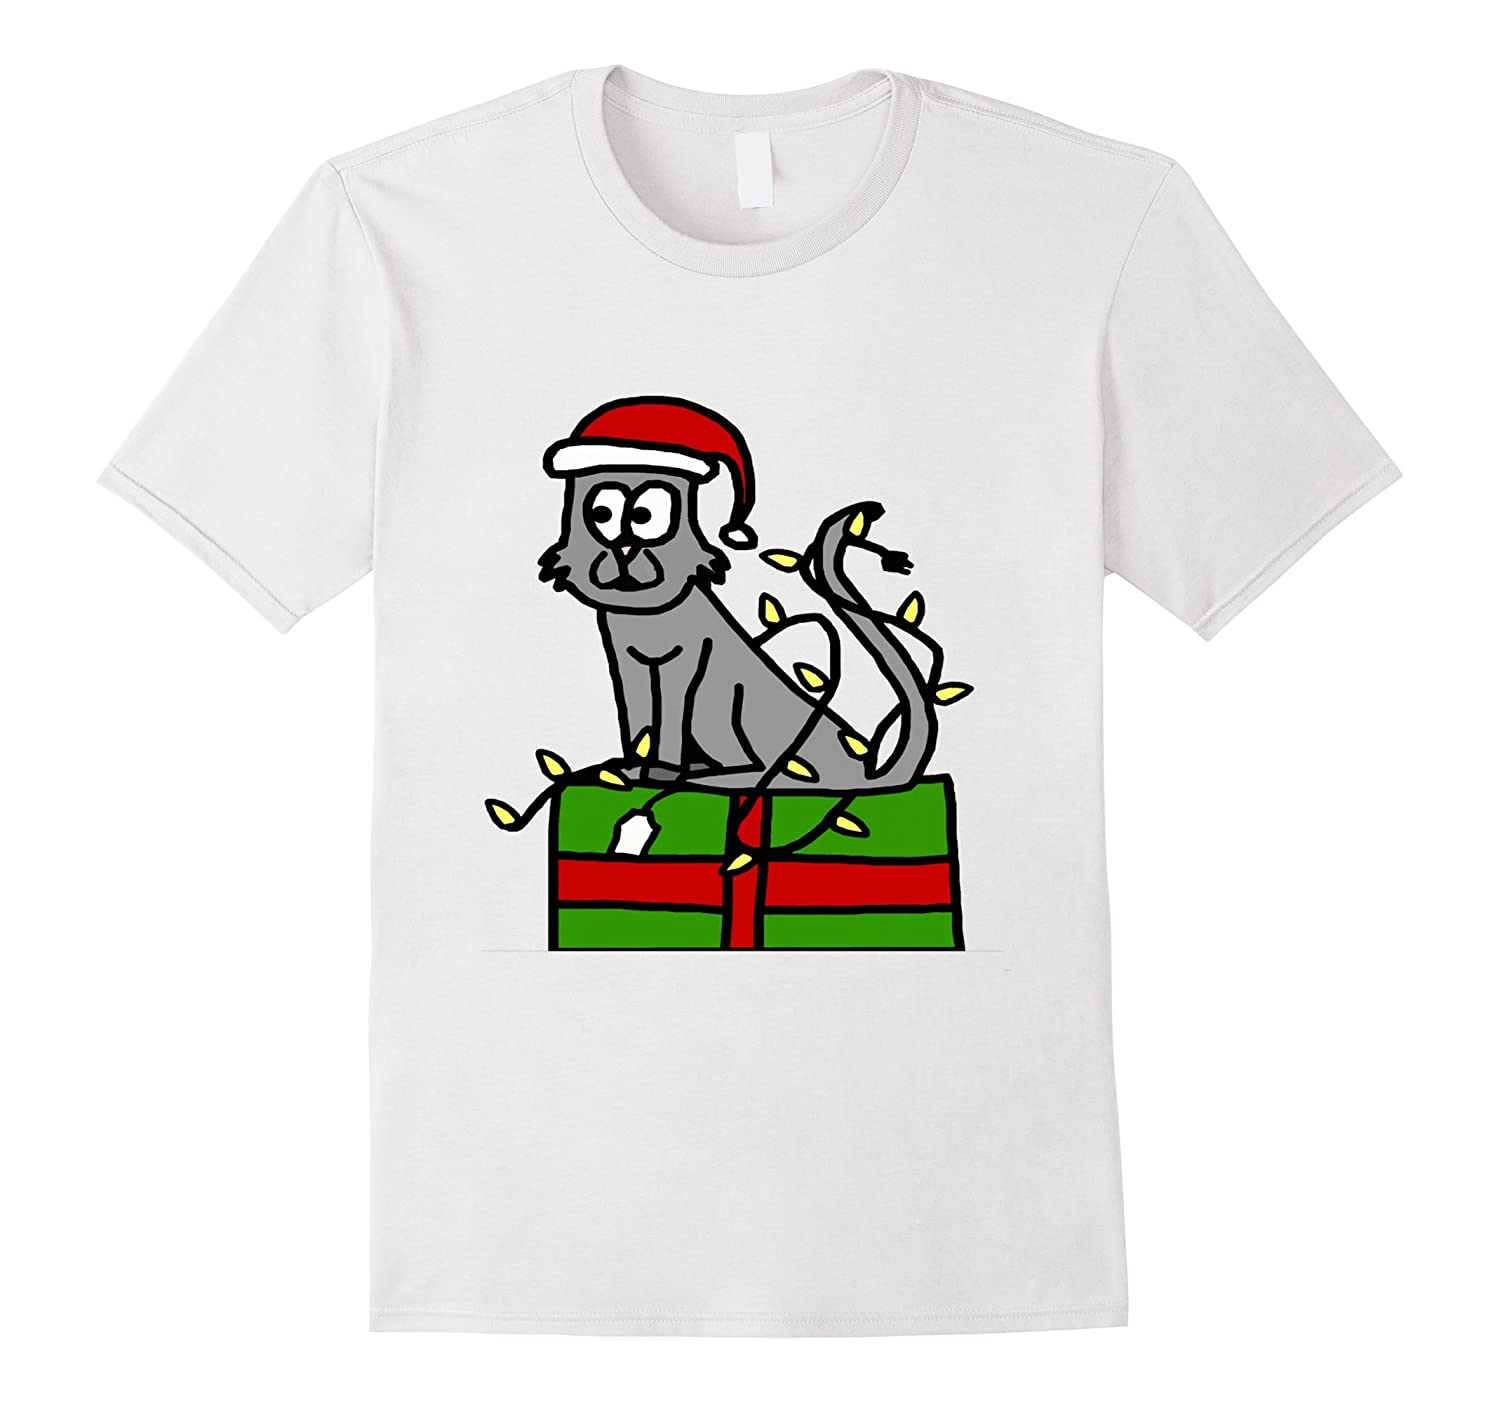 CHRISTMAS GIFT AND CAT T SHIRTS FOR MEN WOMEN BOYS GIRLS-CL